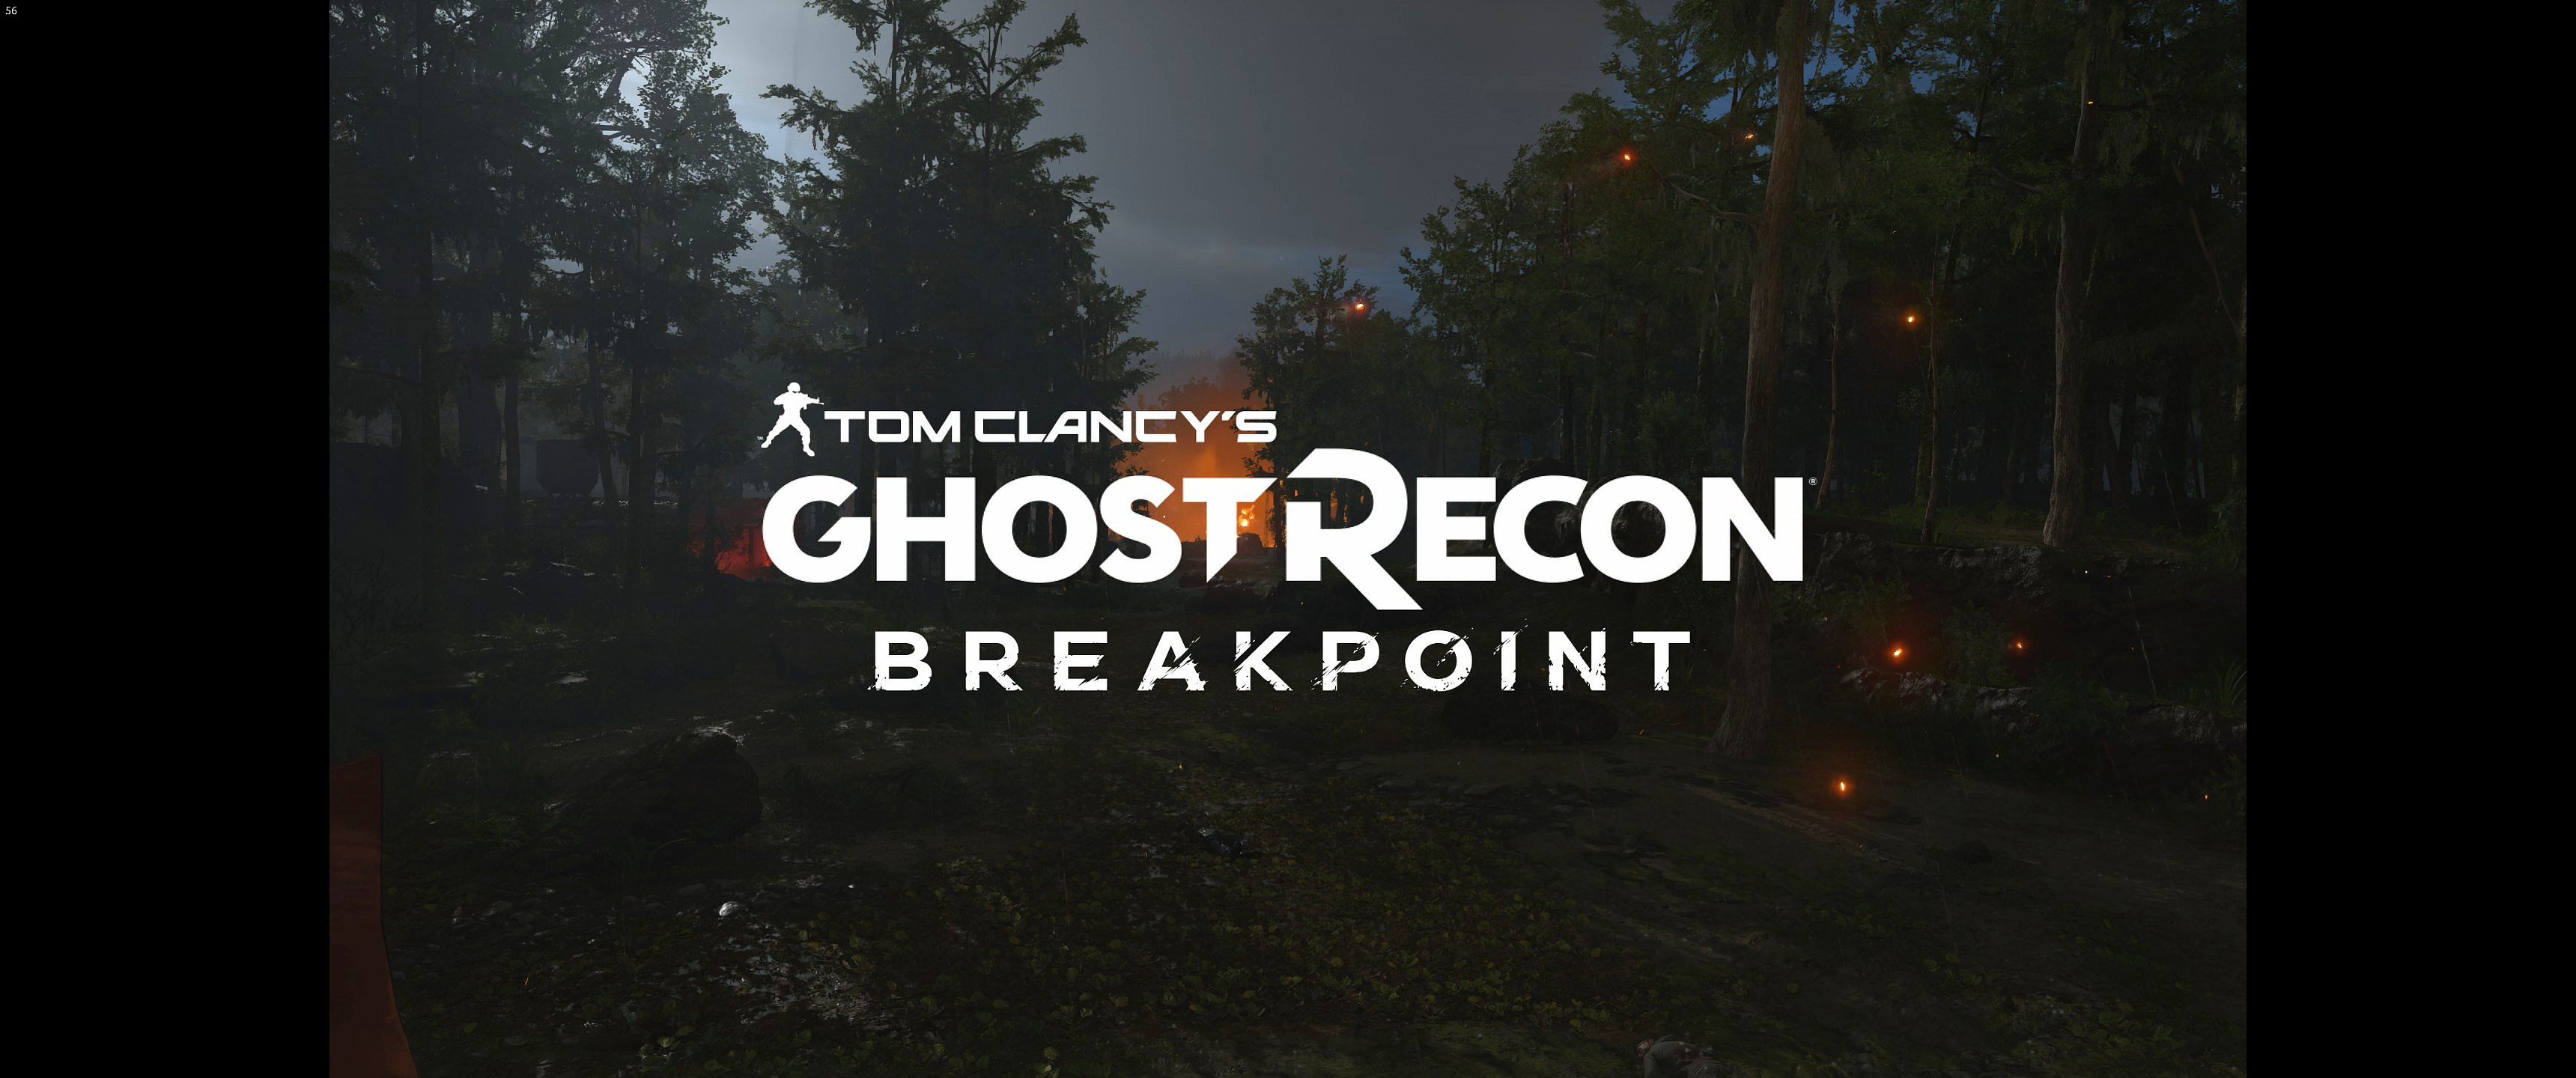 Tom Clancy's Ghost Recon® Breakpoint2019-10-3-0-3-26.jpg